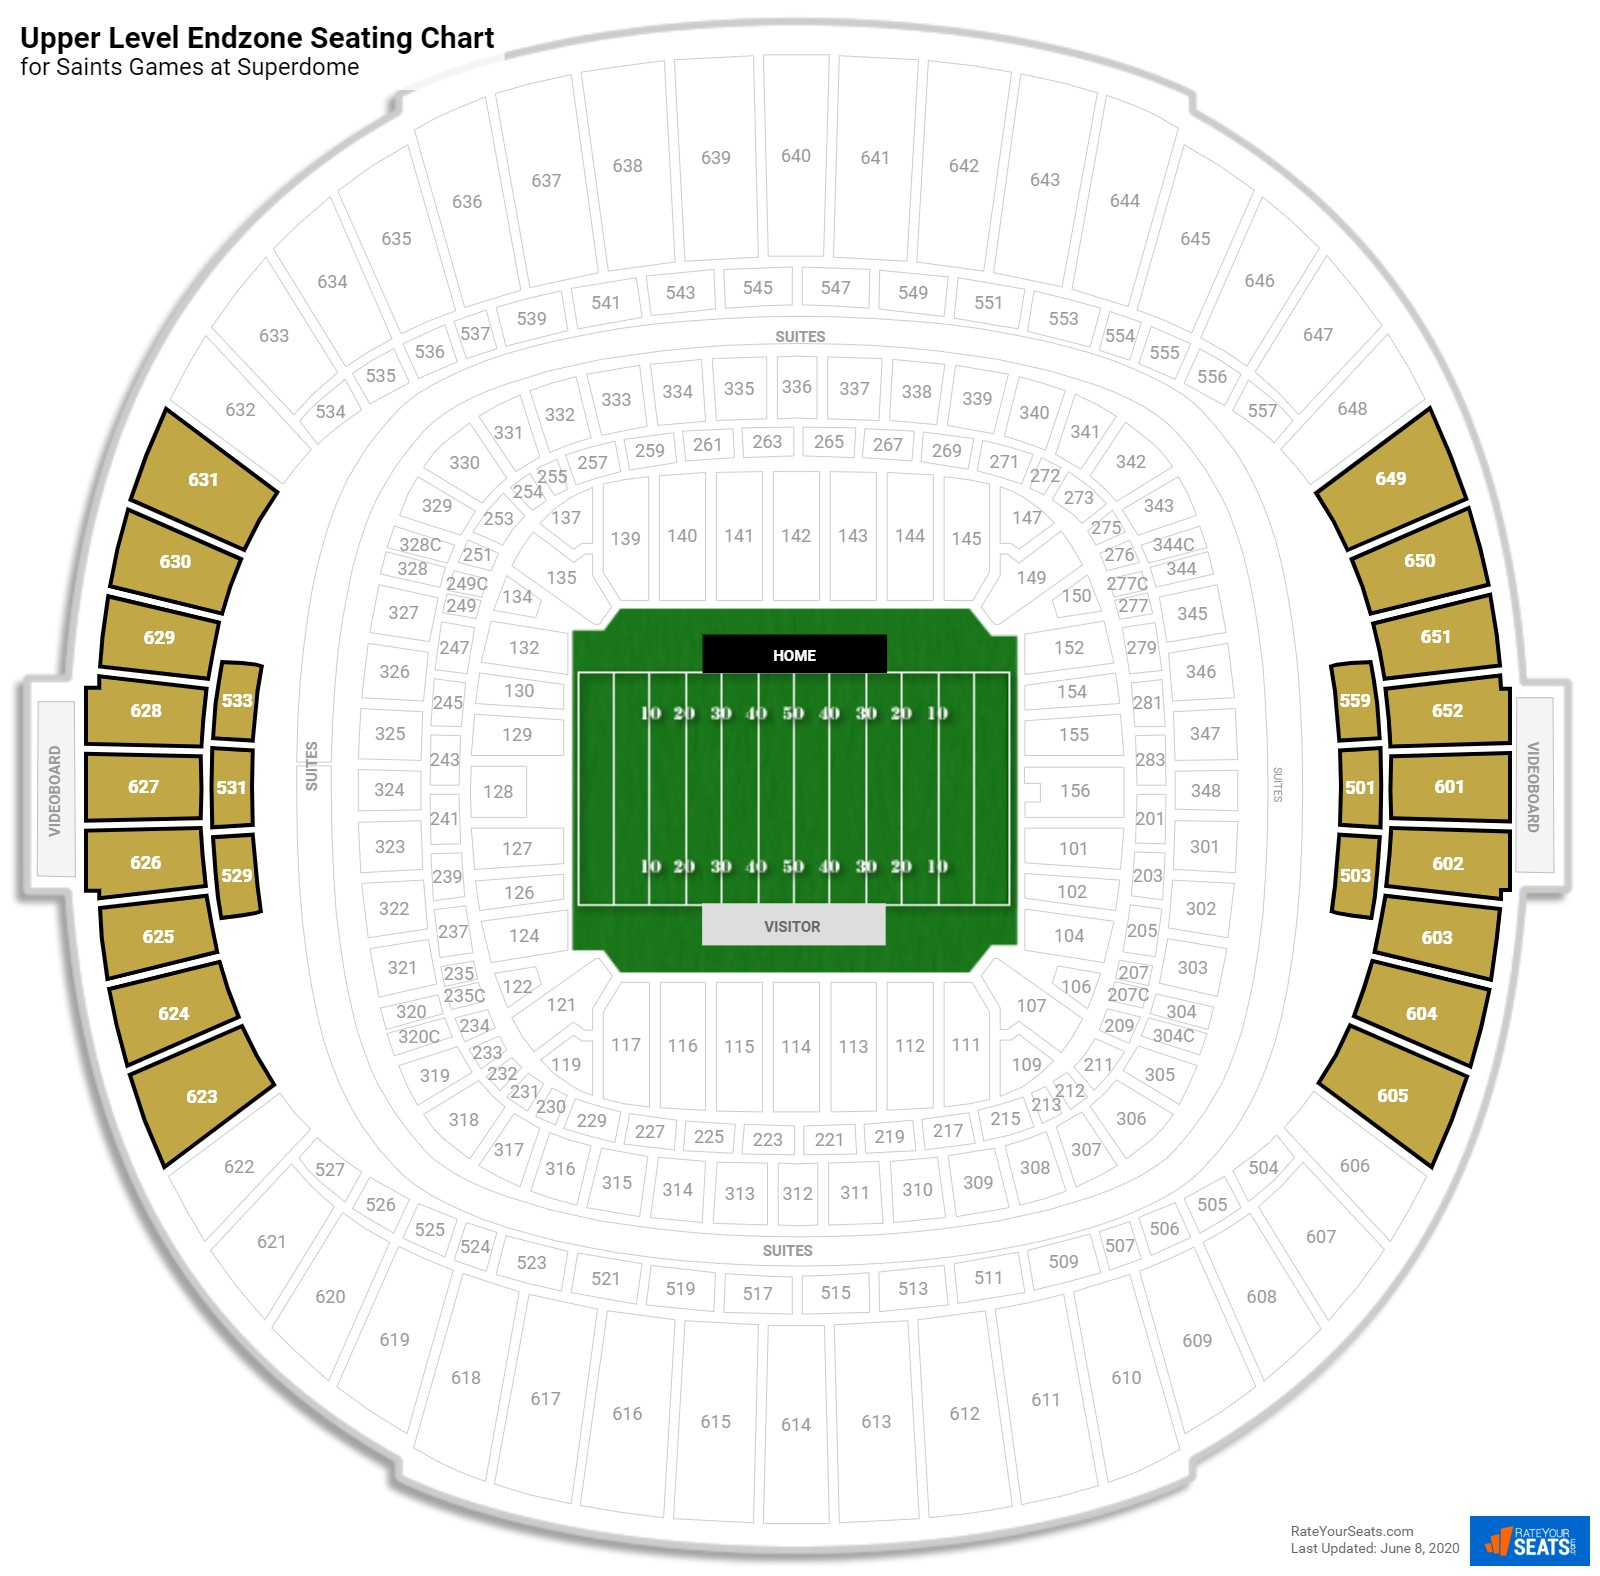 Superdome Upper Level Endzone seating chart